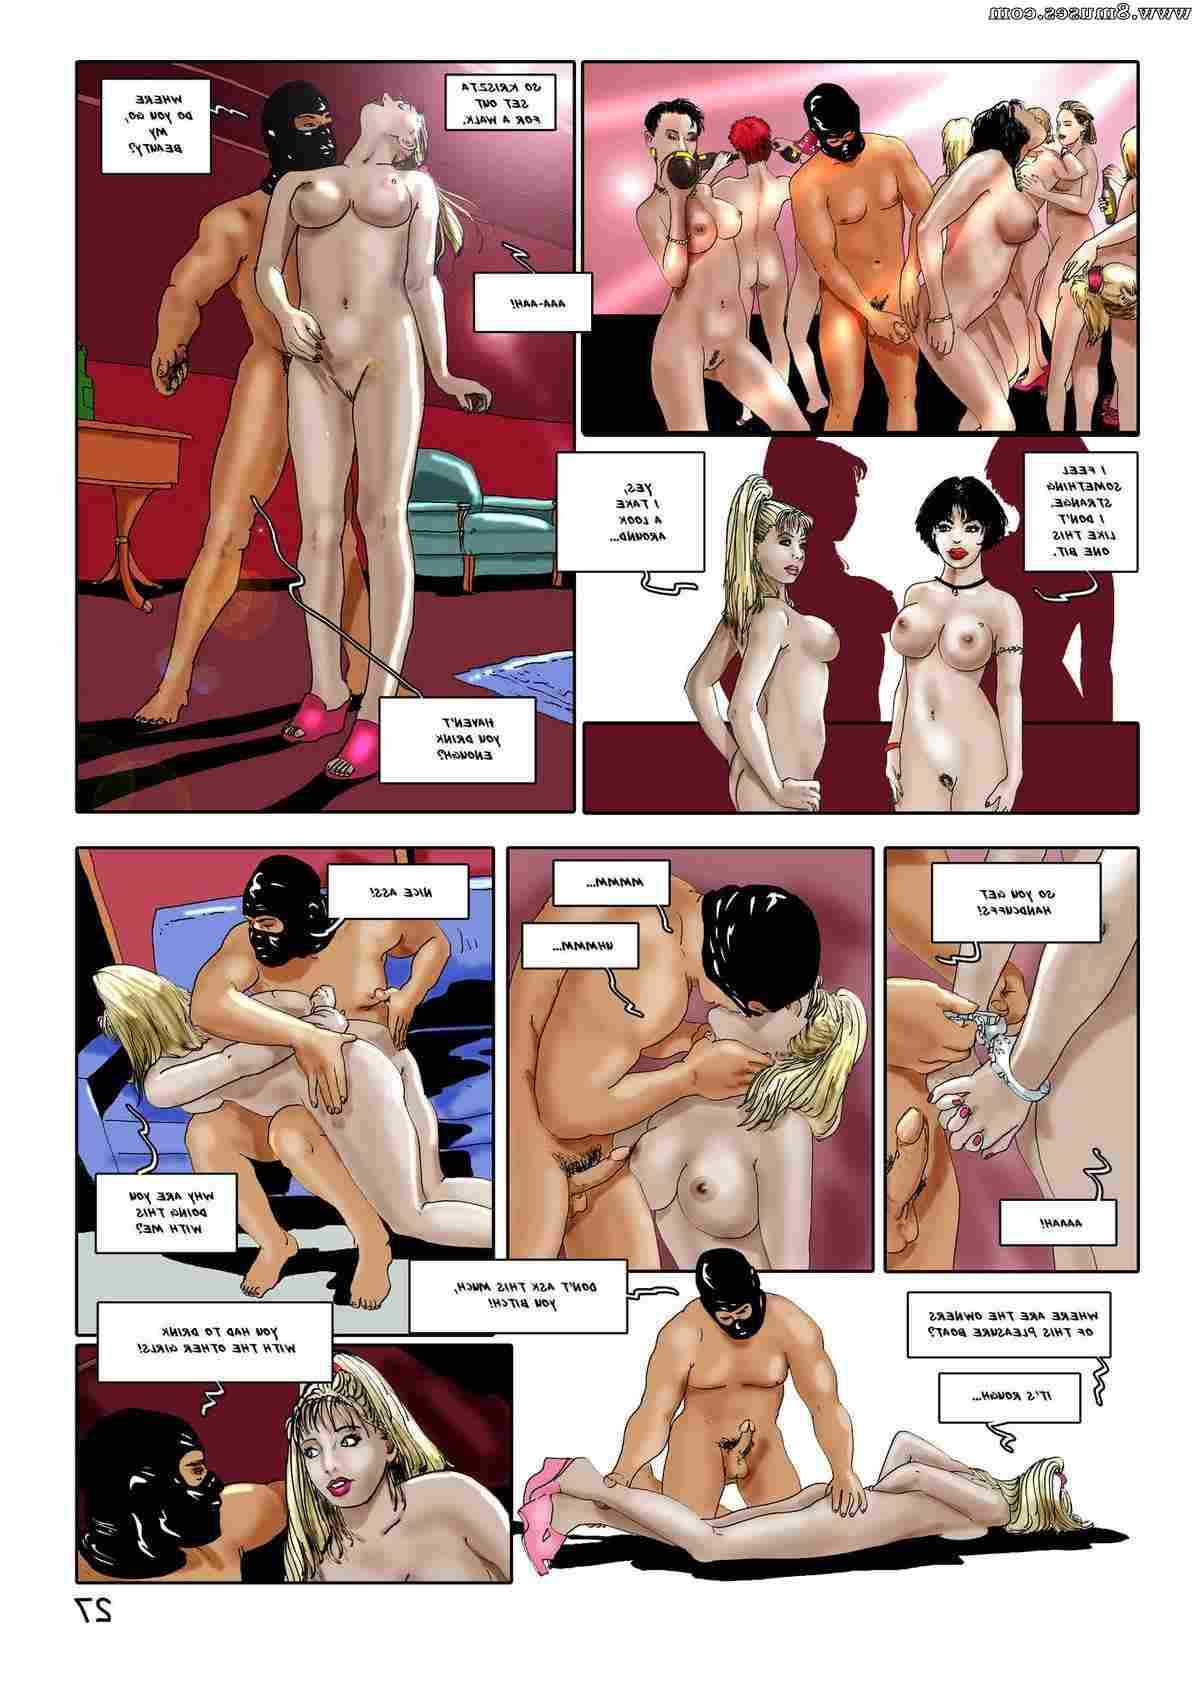 AllPornComics_com-Comics/Danube-Girls Danube_Girls__8muses_-_Sex_and_Porn_Comics_27.jpg